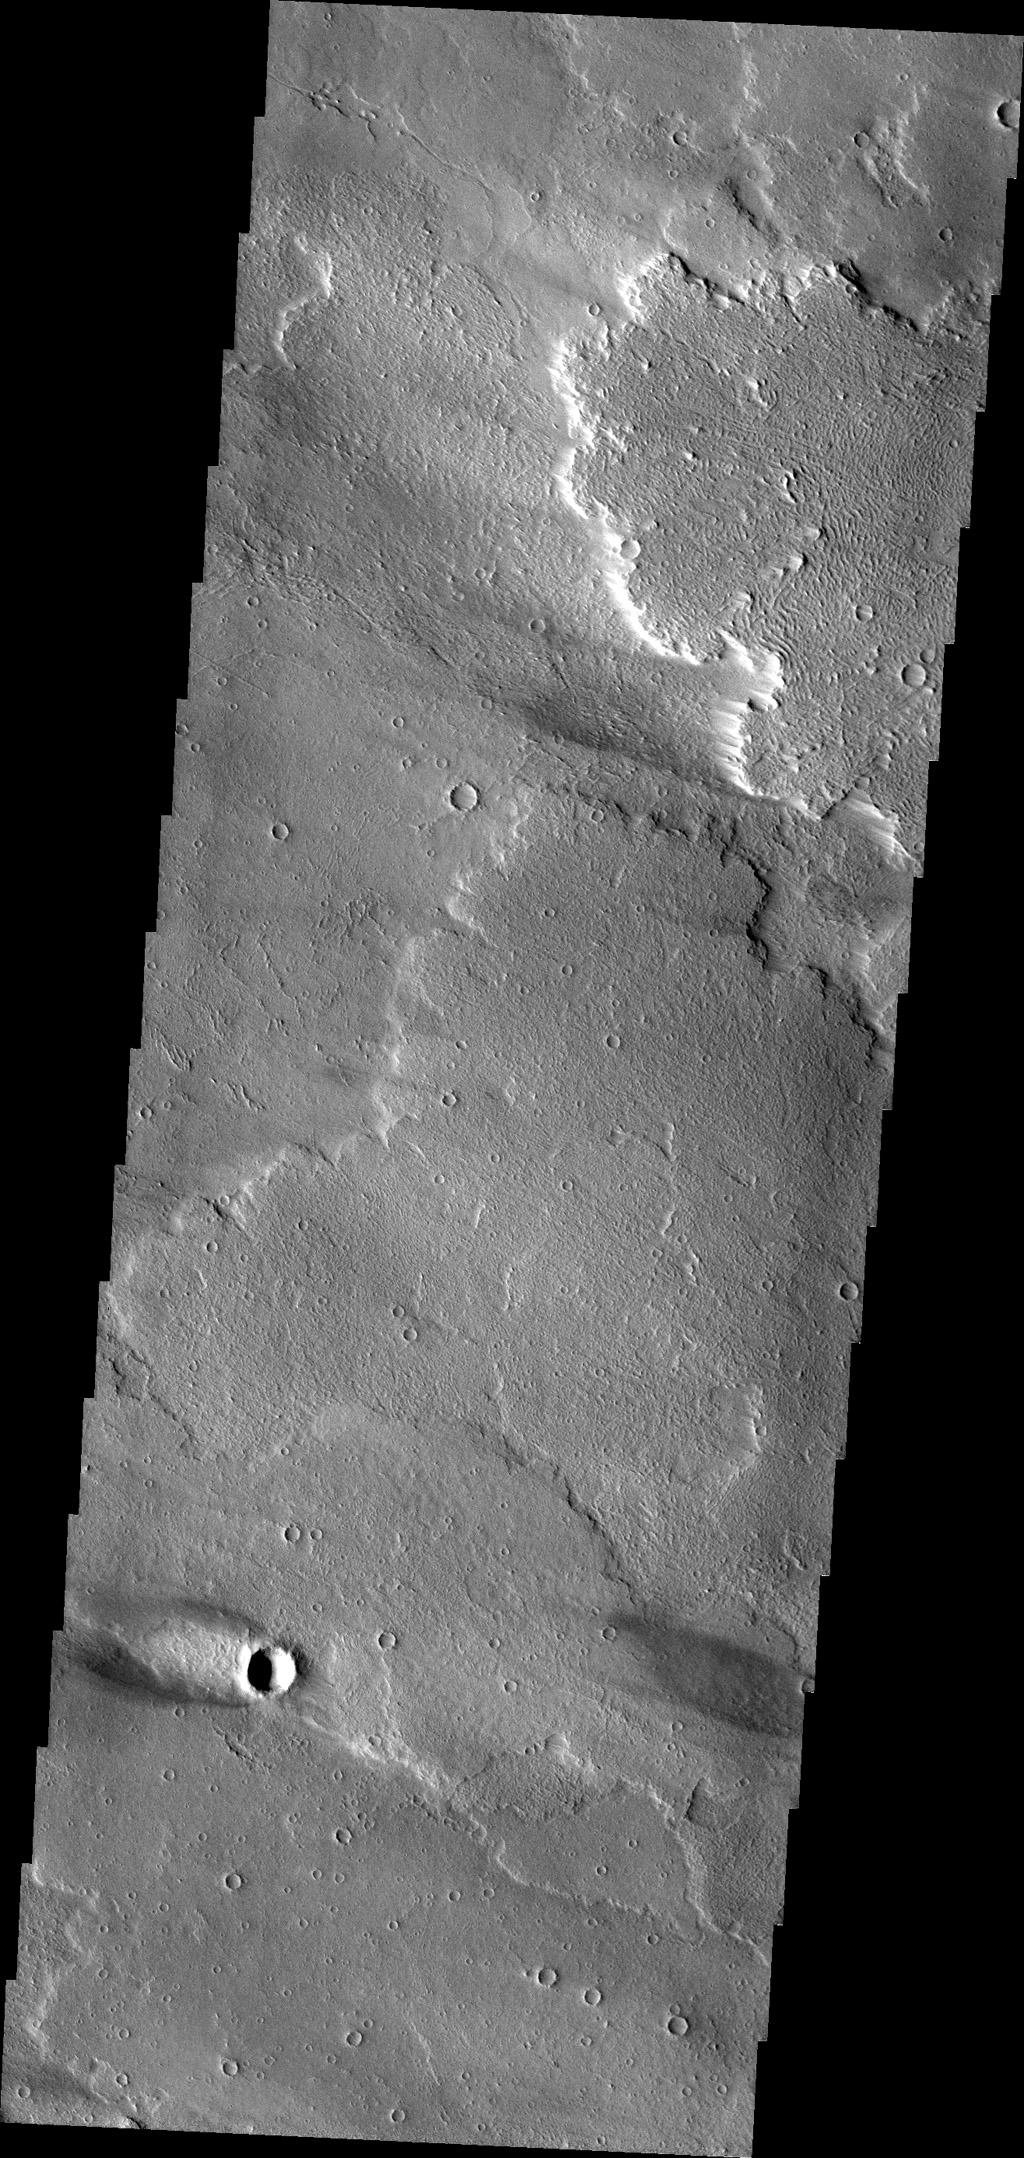 This windstreak is located on the volcanic plains of Daedalia Planum as seen by NASA's Mars Odyssey. The dark outer margin is the region of dust being removed from the surface. The inner bright part is where dust is being deposited.